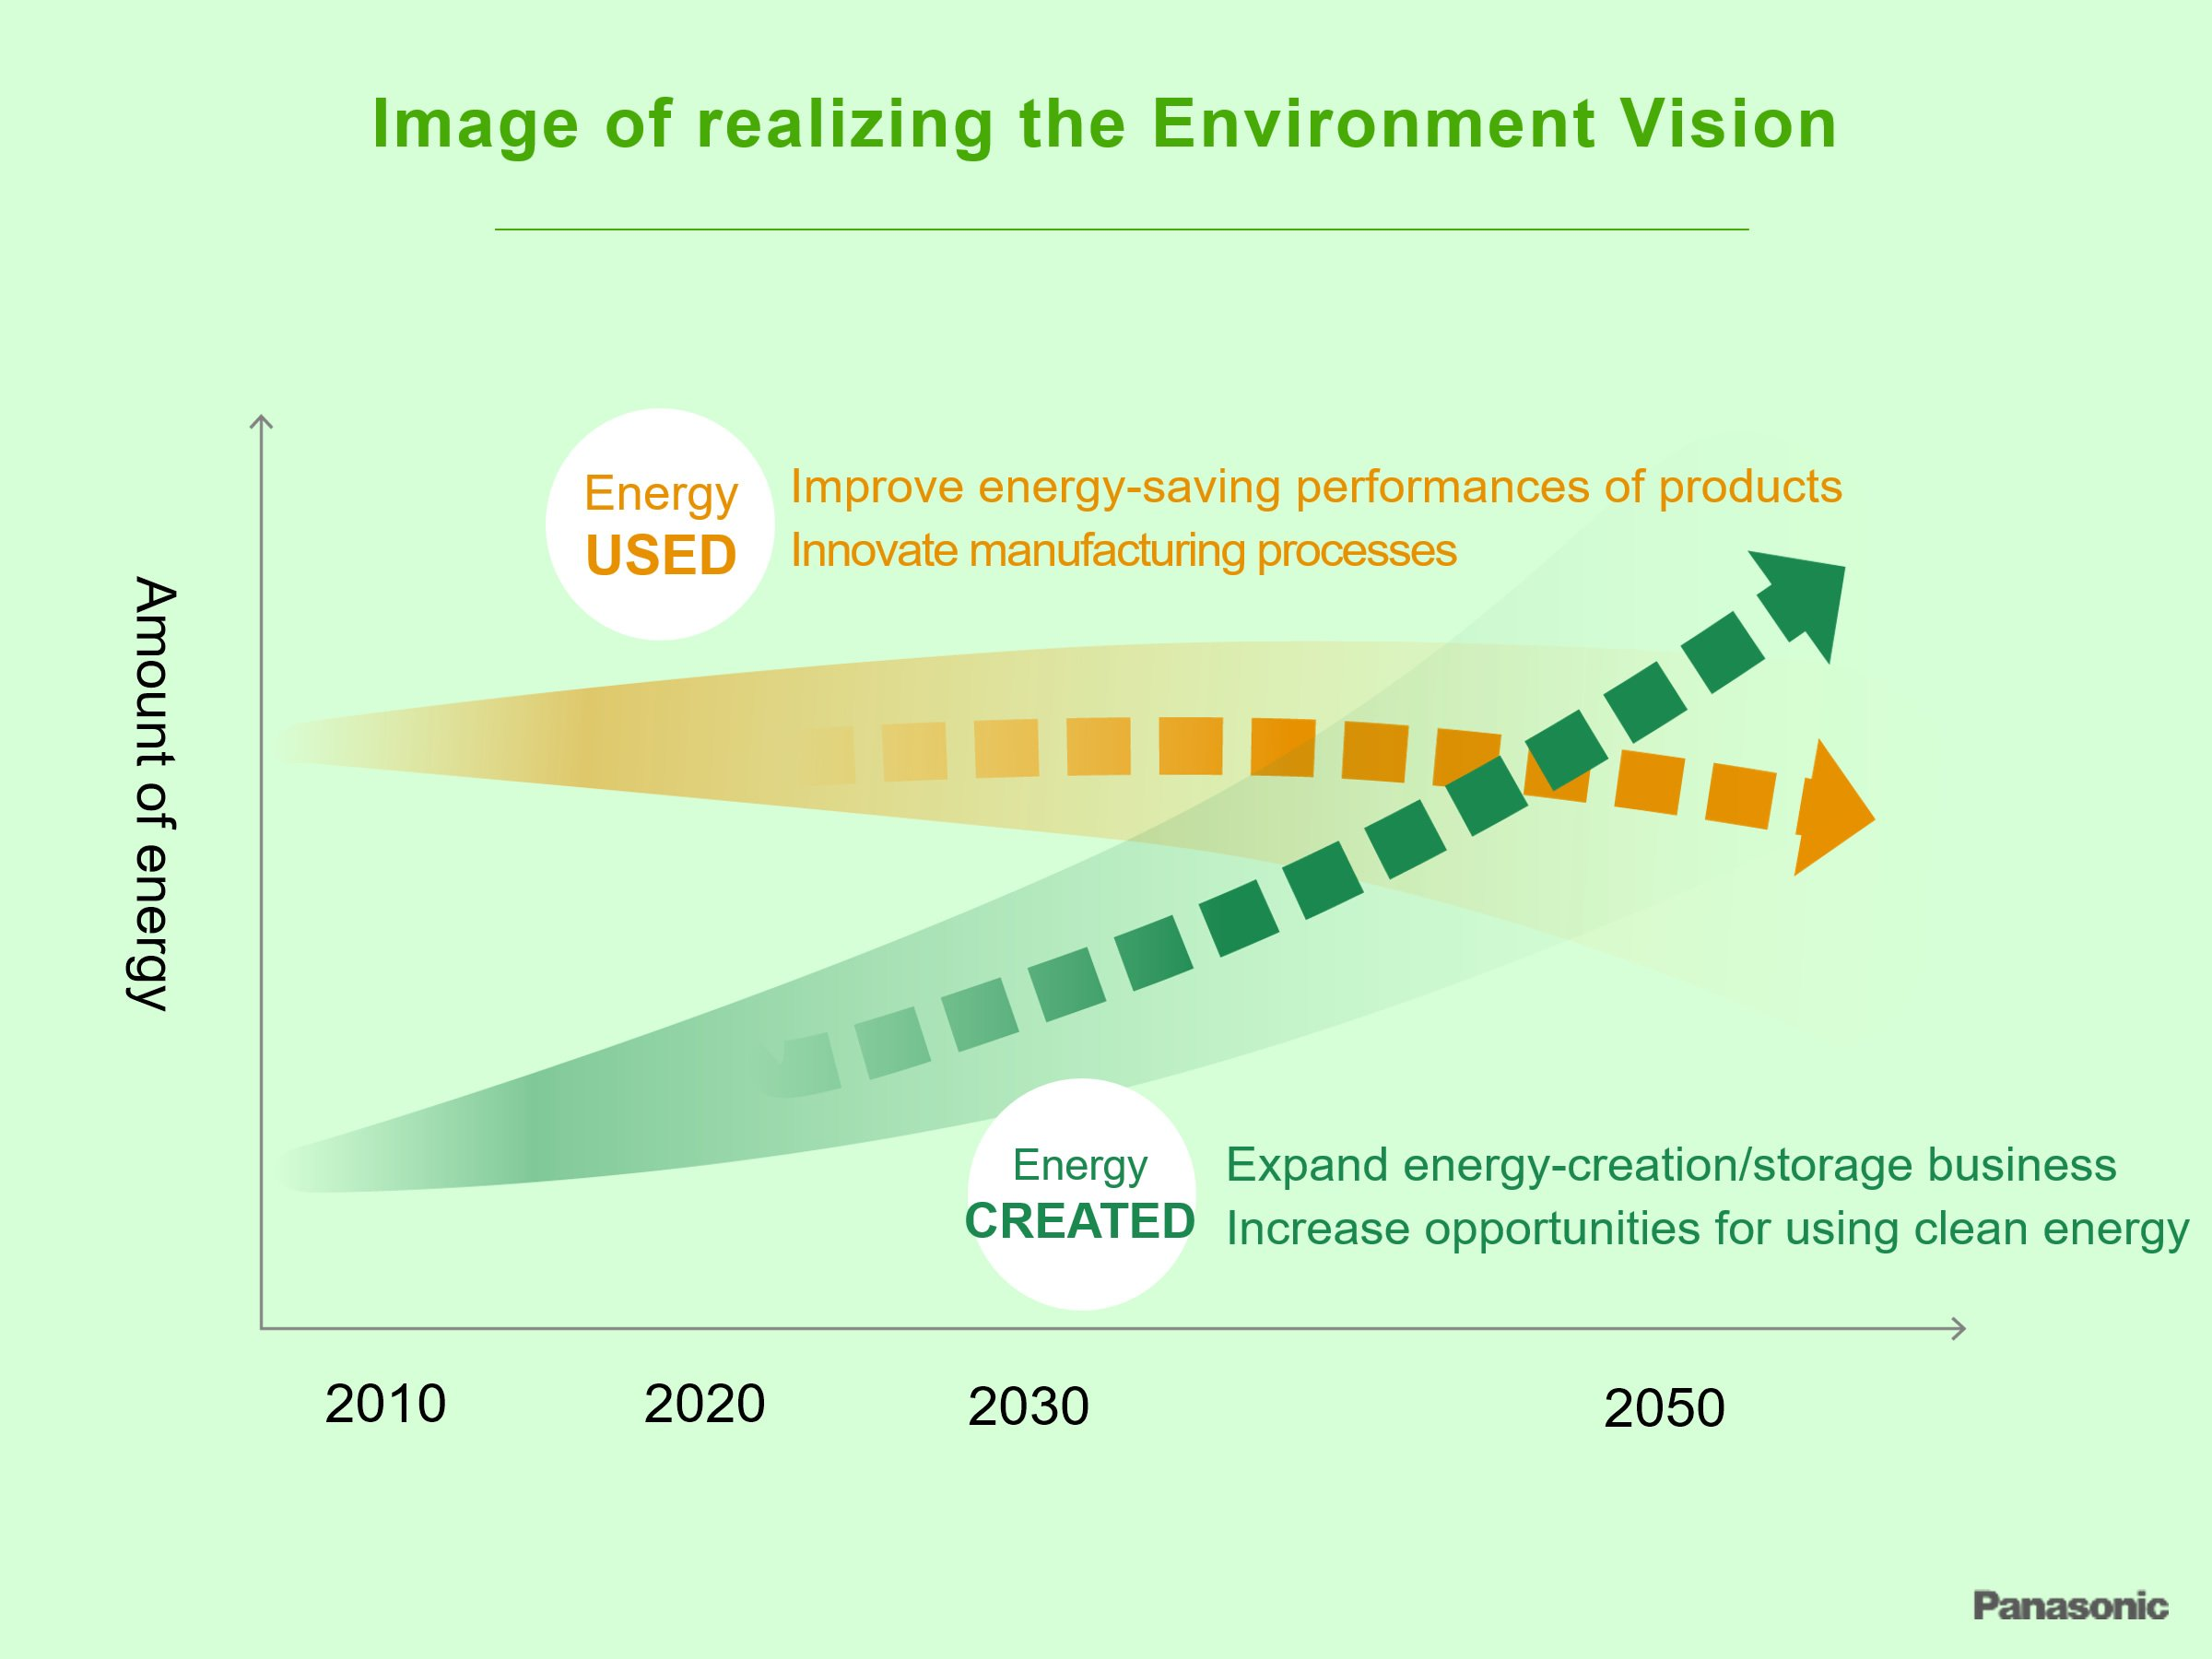 Image of realizing the Environment Vision